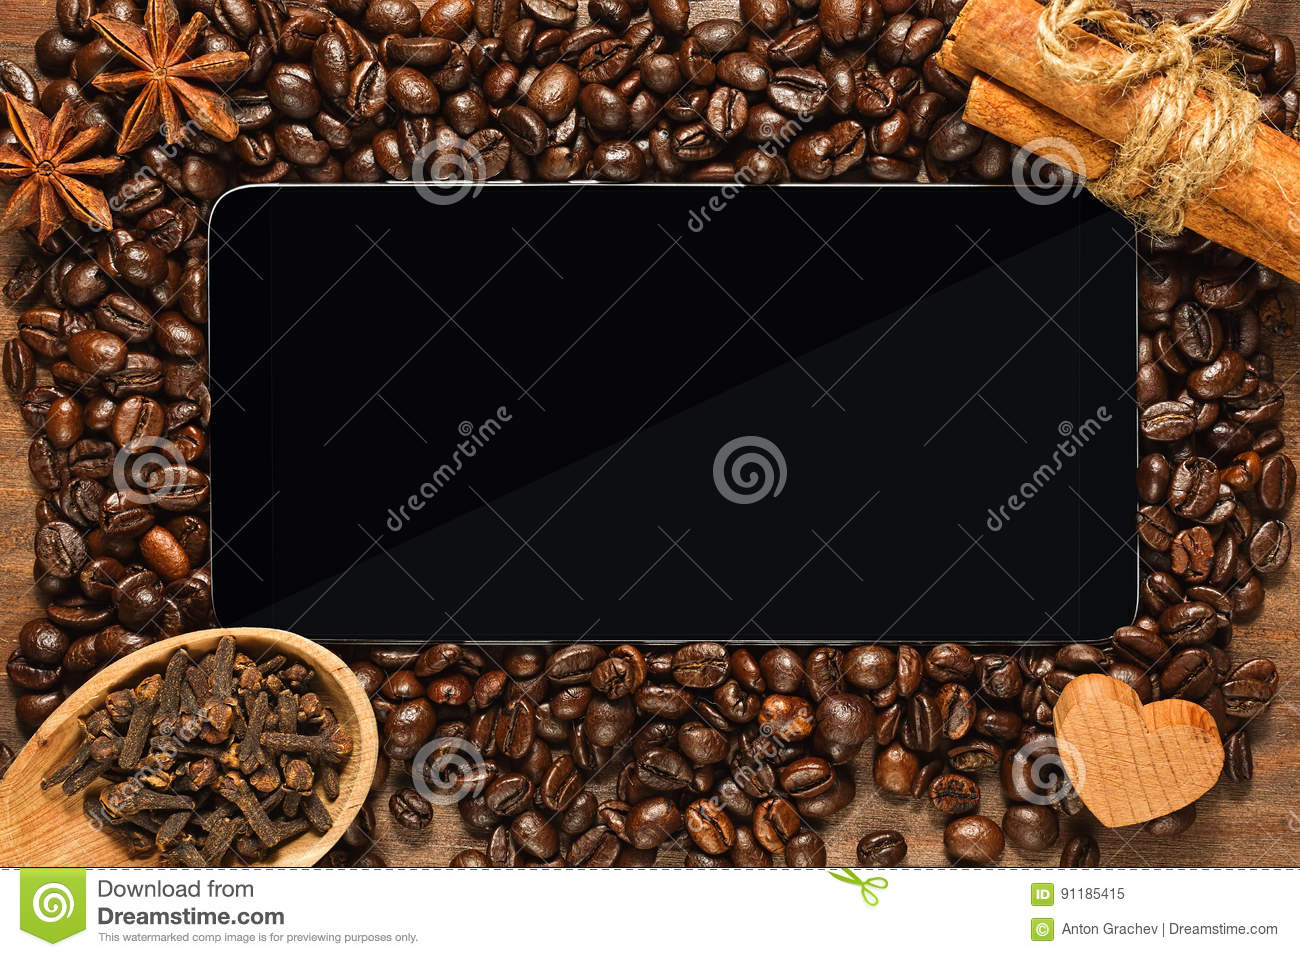 Smartphone or tablet with frame of coffee beans and condiments